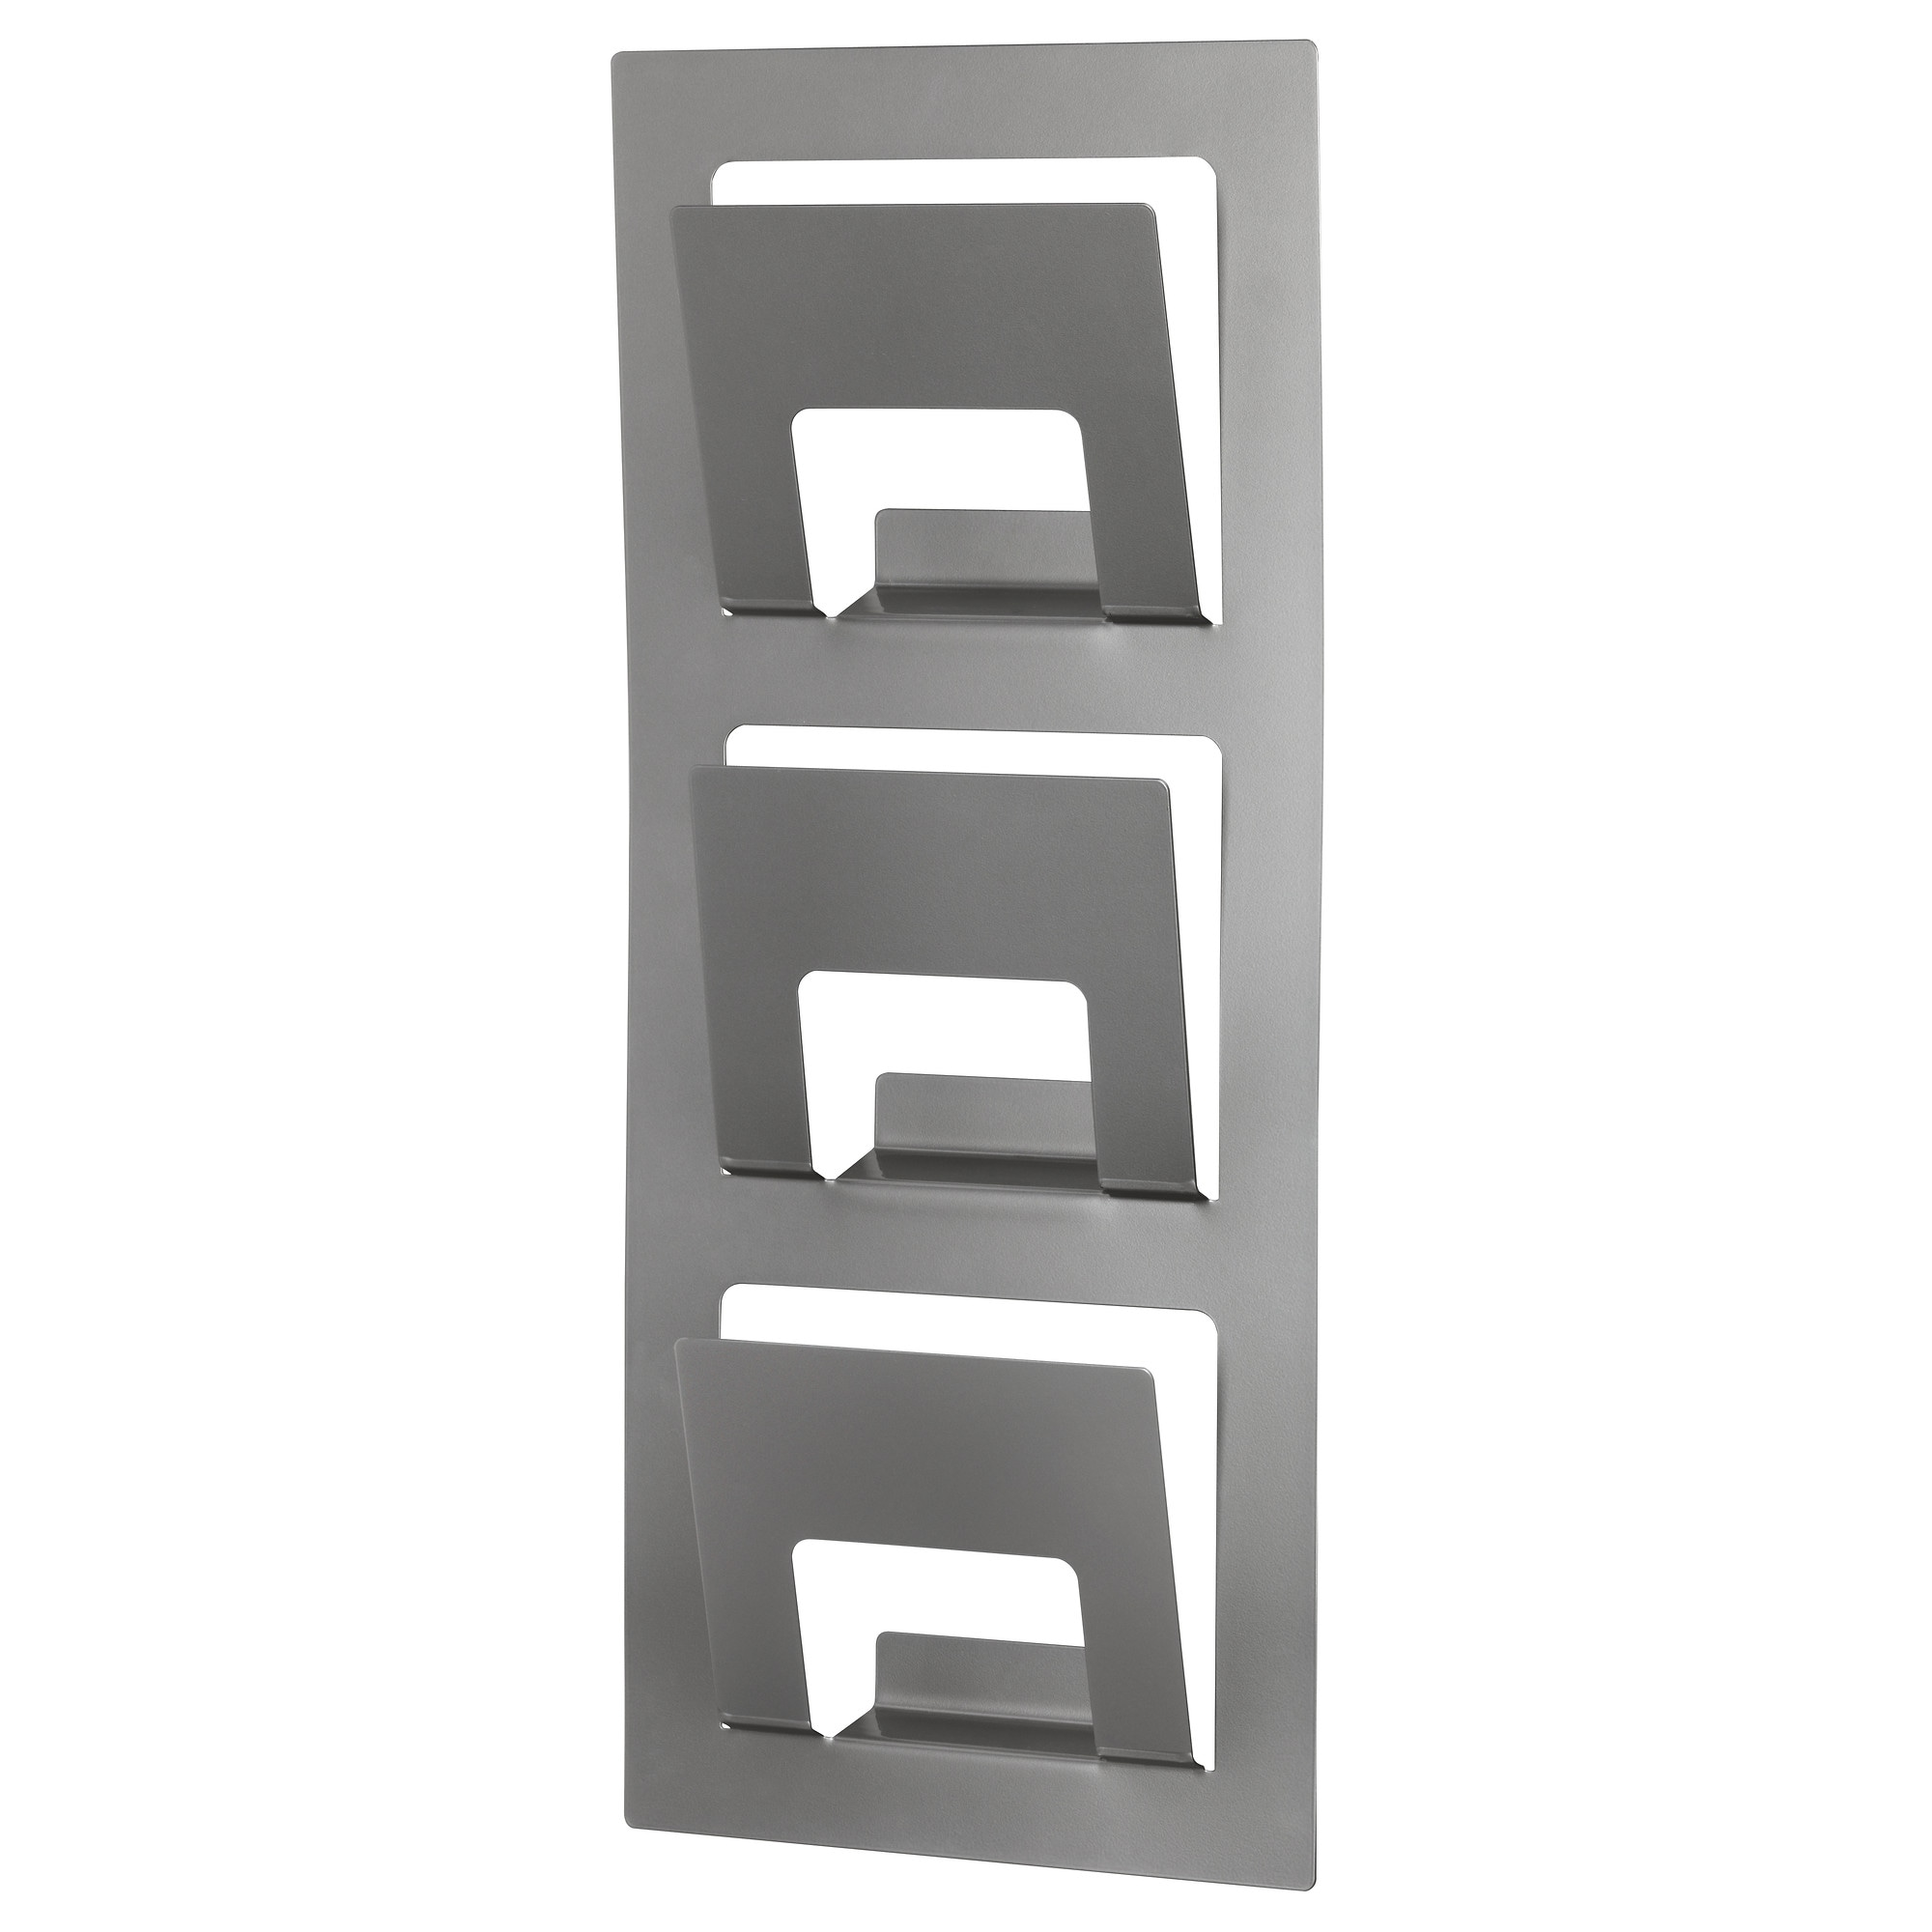 wall slot rack mount mesh holder display detail mounted onyx product magazine steel